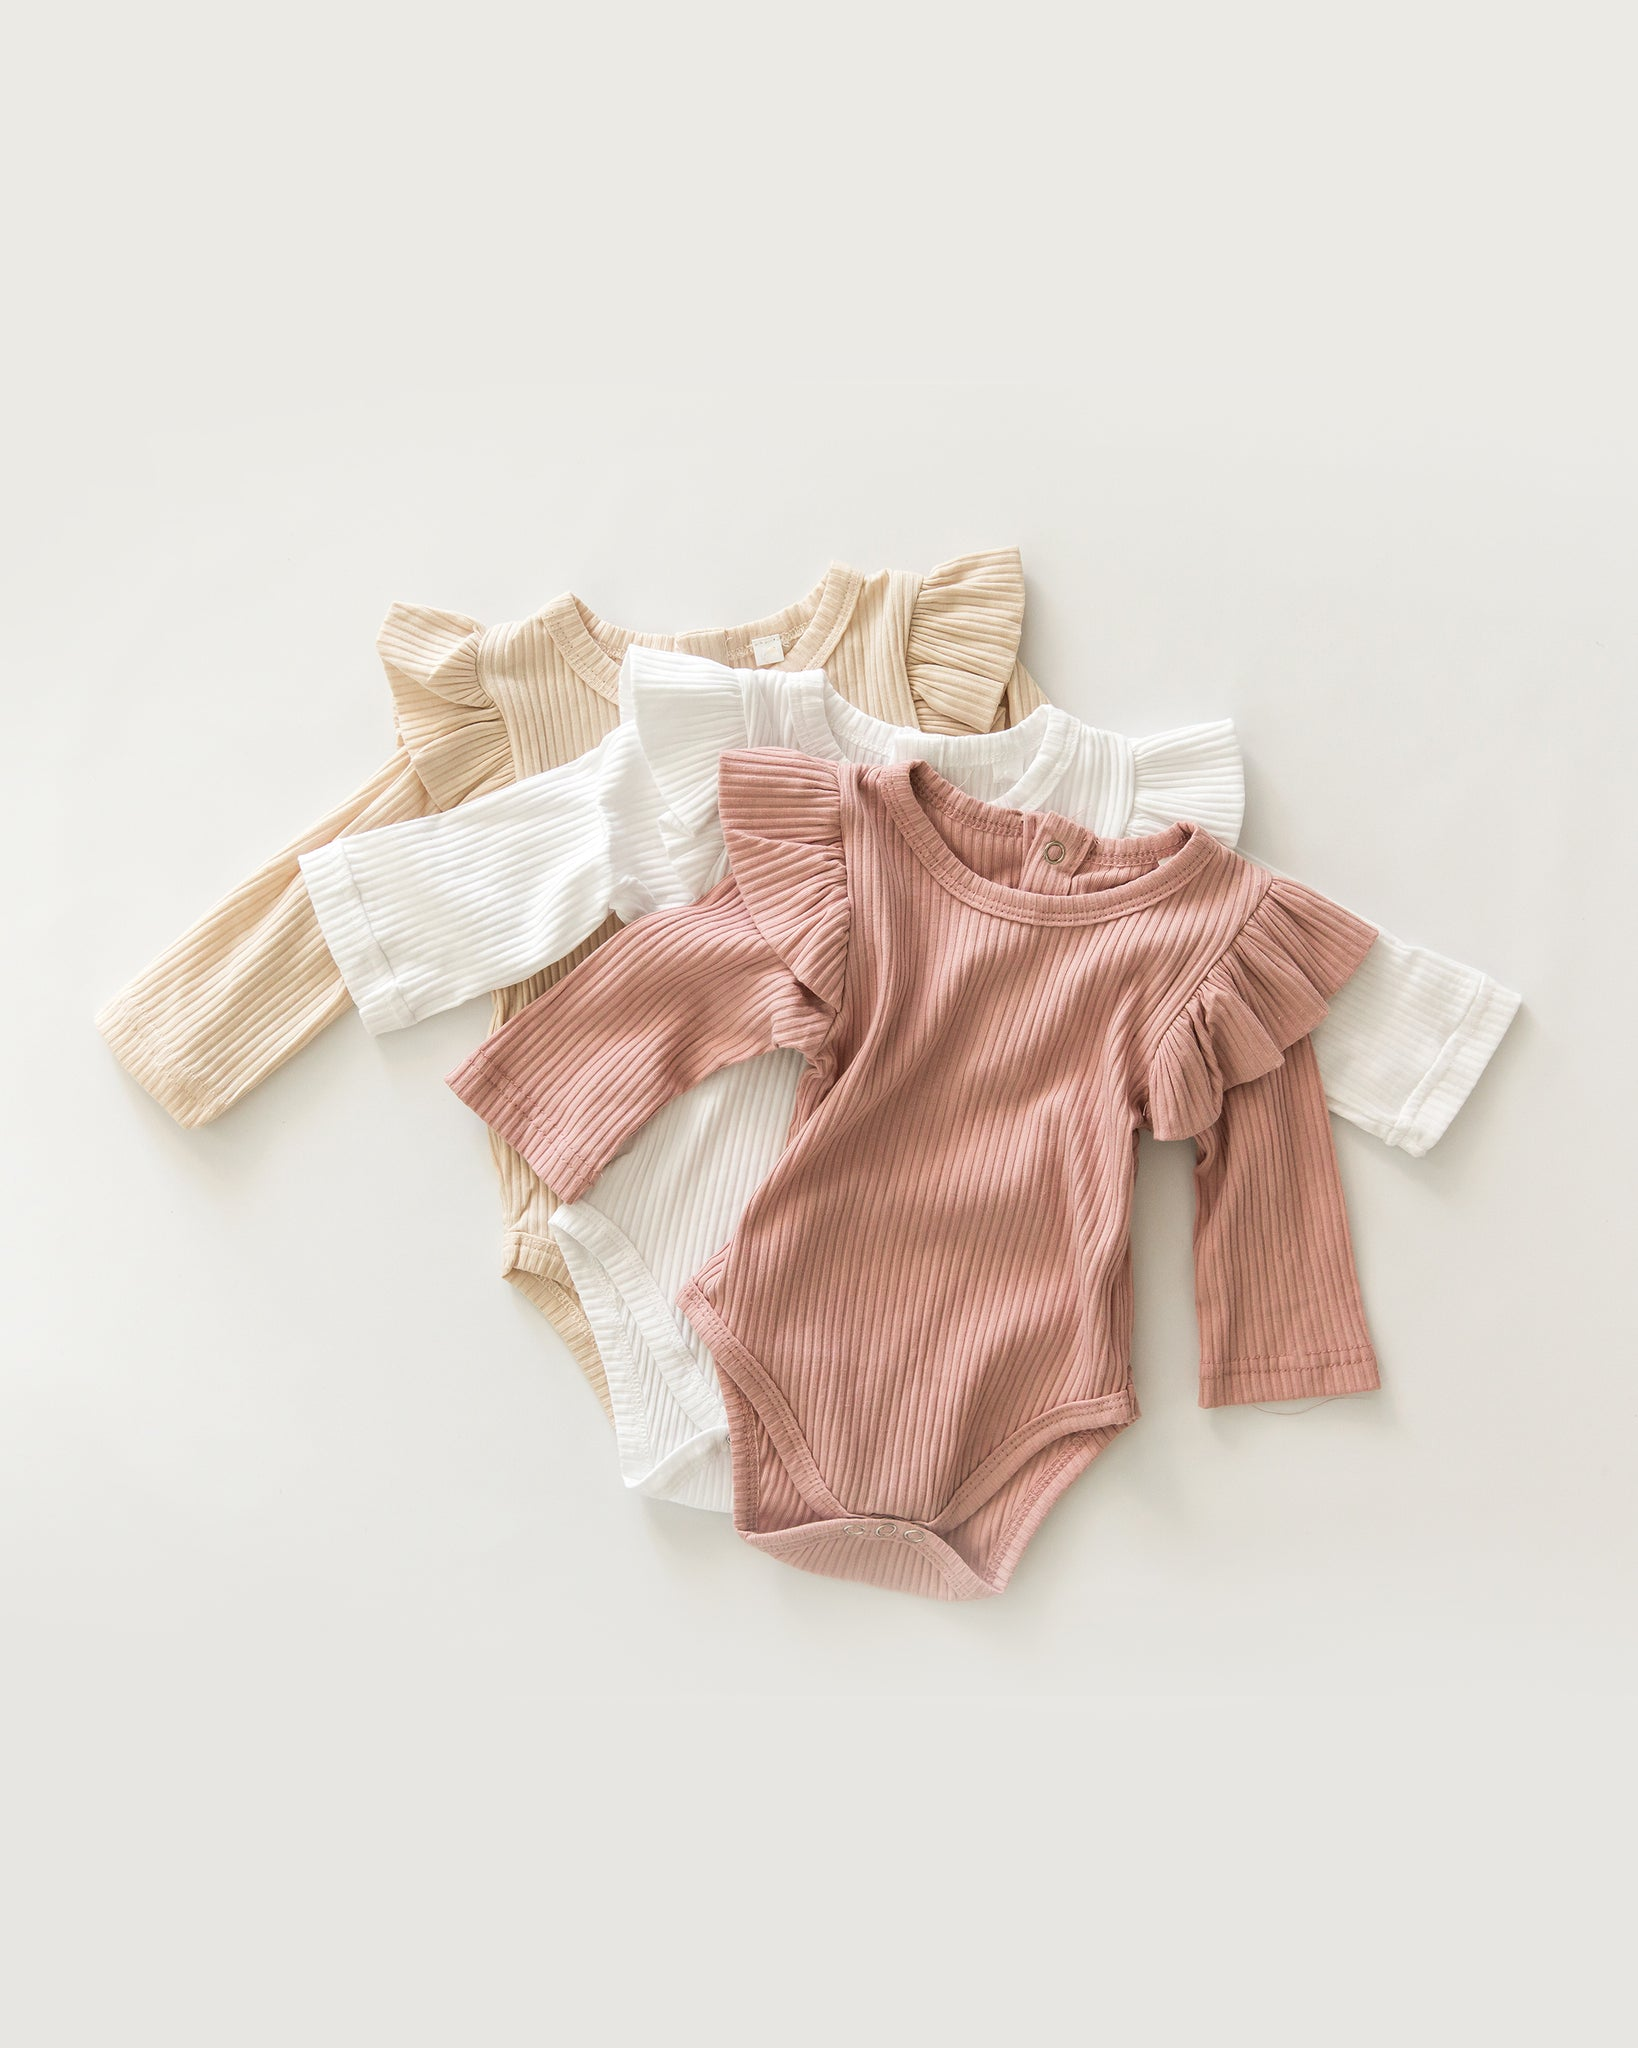 Ruthie Long-Sleeved Bodysuit in Beige